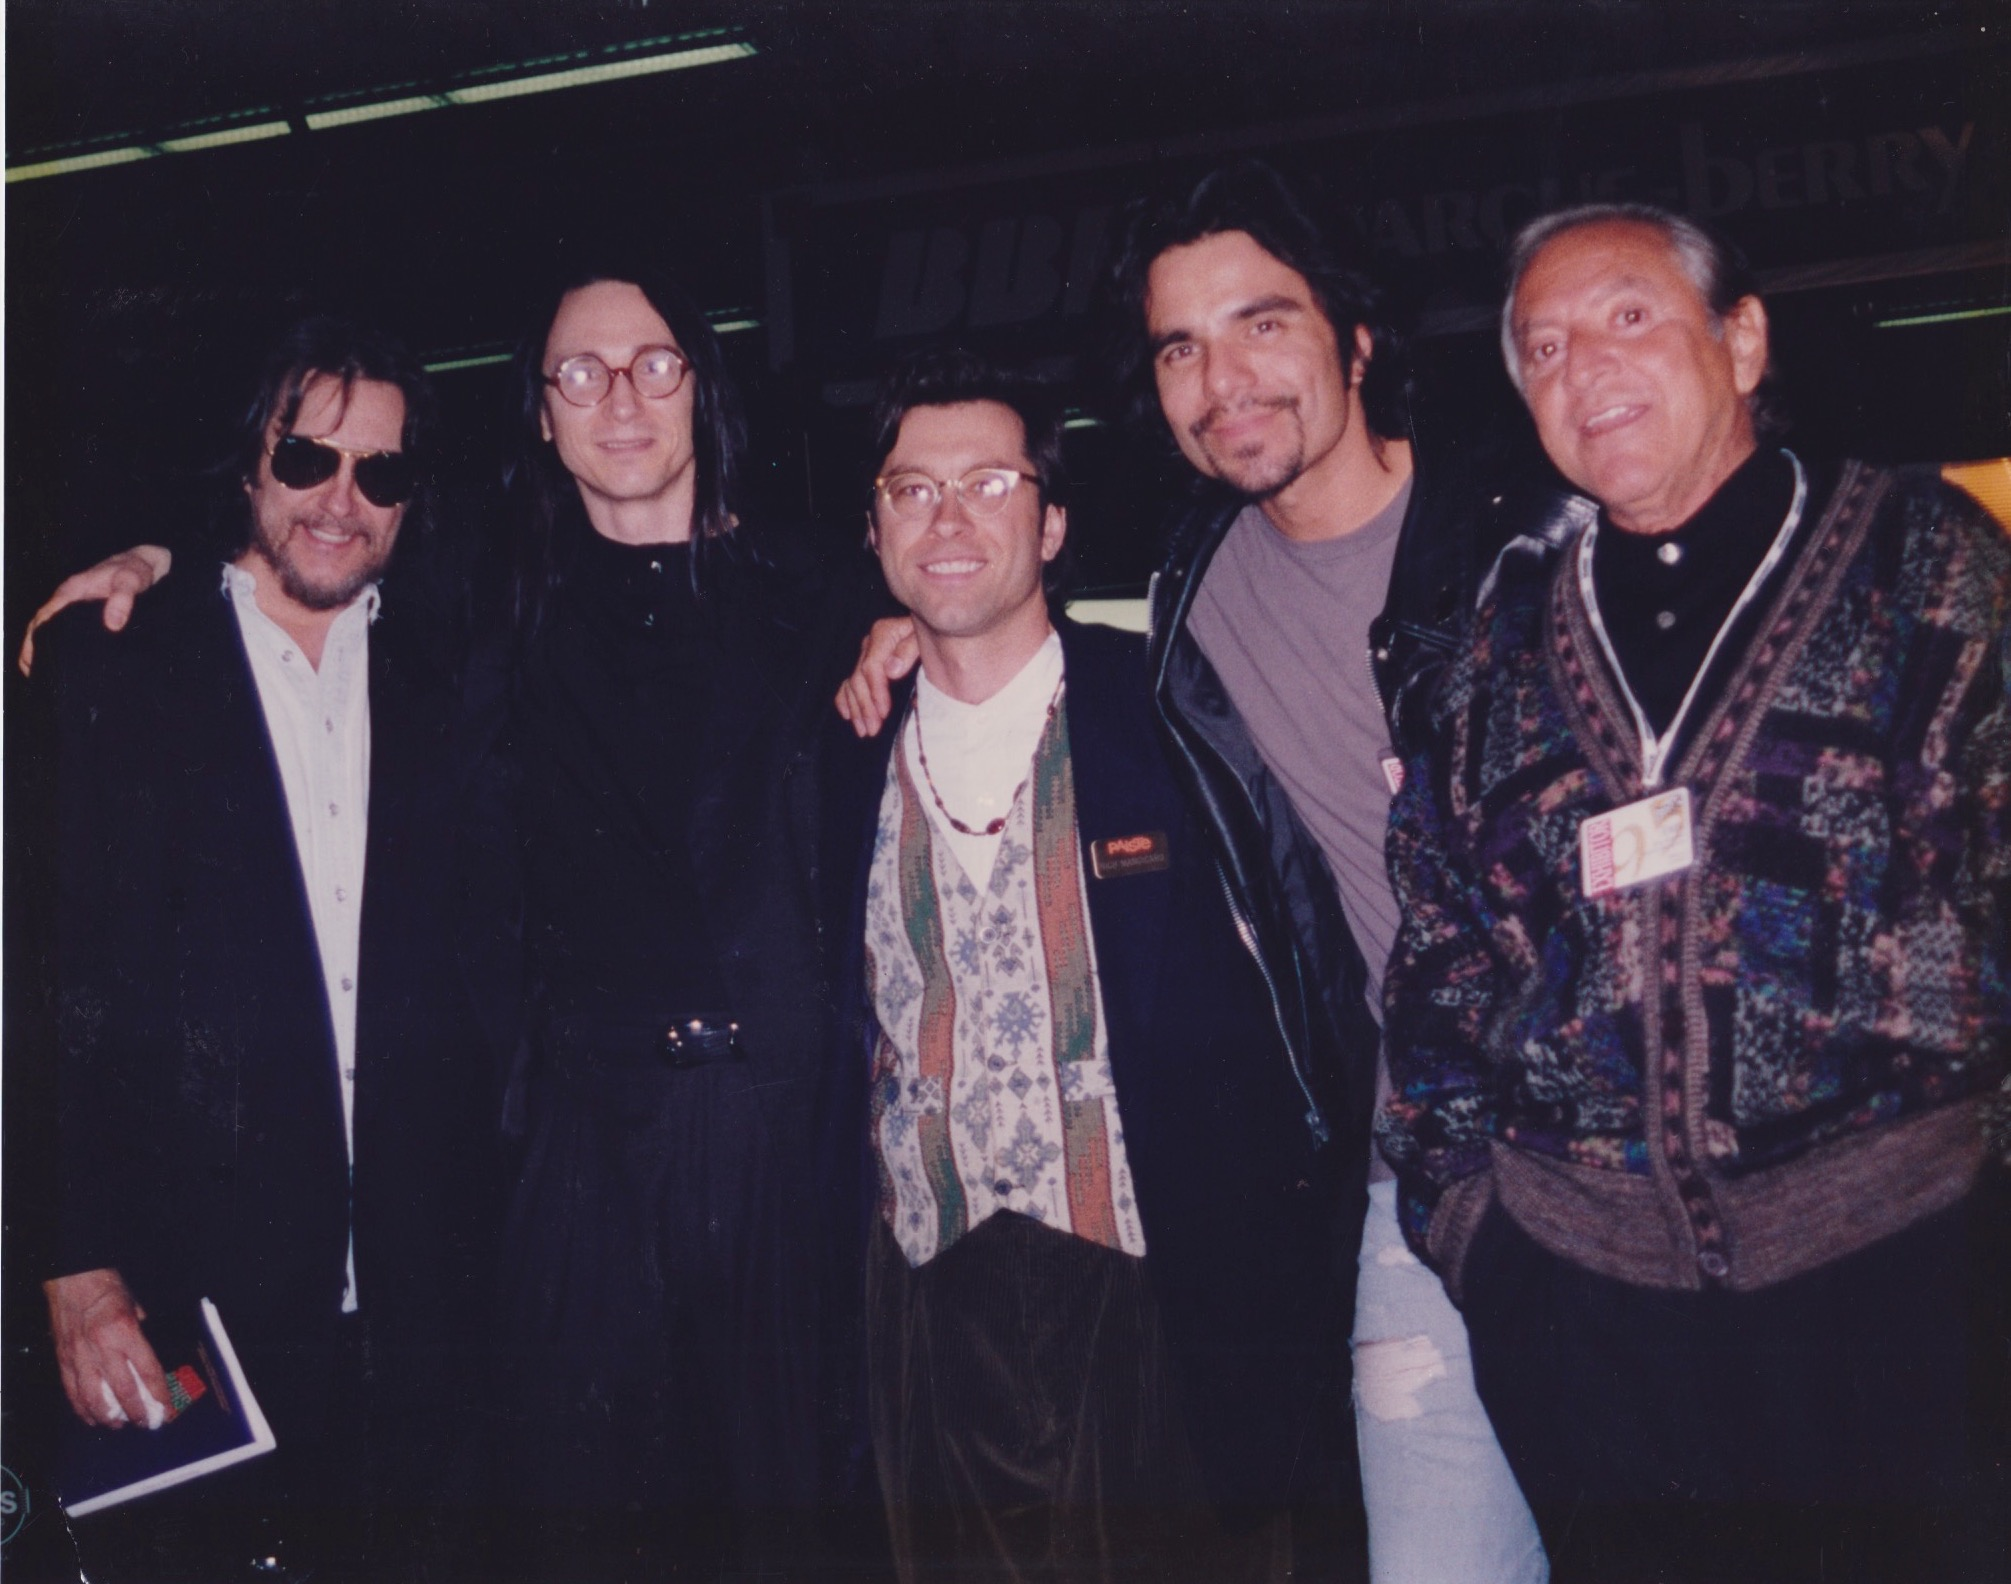 w/Jim Keltner, Terry Bozzio, Rafael Gayol, Emil Richards